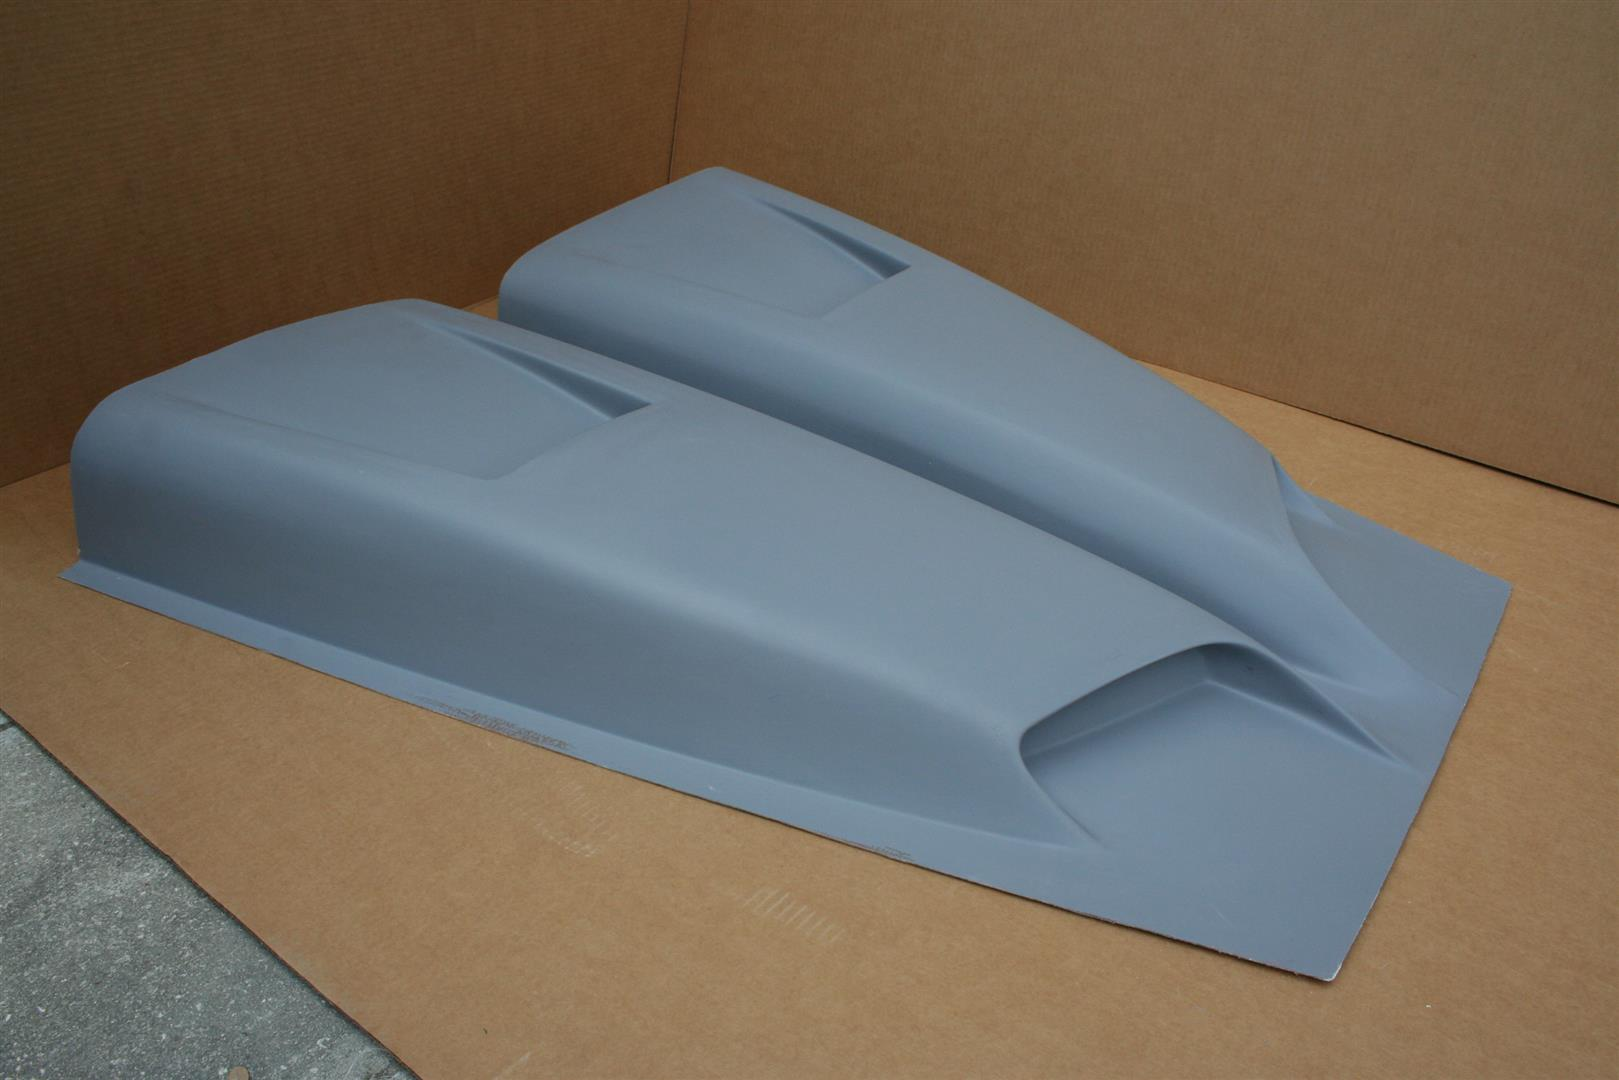 Cowl Induction Hood Scoops : Ram air cowl induction hood scoop universal dodge chevy ebay